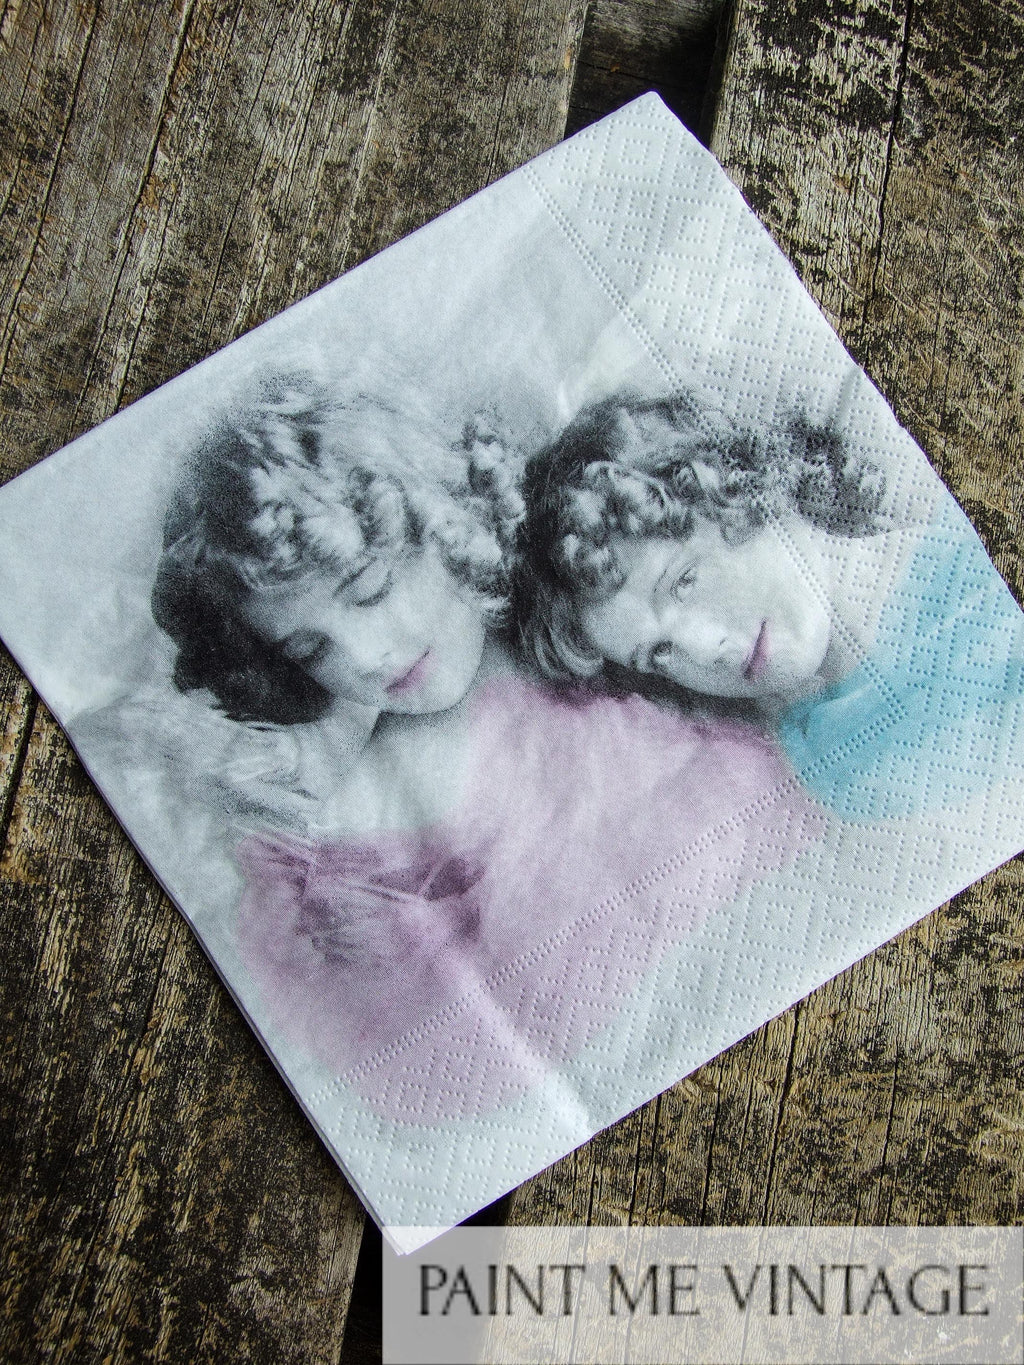 Napkin for Decoupage Vintage Pink and Blue Angel Girls | Paint Me Vintage | Tauranga, New Zealand | chalk paint | chalkpaint | silicone mould | furniture painting | vintage paint | stencils | IOD | Iron Orchid Design | coloured wax | furniture wax | furniture transfers | workshops | vintage paint nz | painting old furniture nz | upcycling furniture nz | vintage paint stockists | Napkin for Decoupage Vintage Pink and Blue Angel Girls